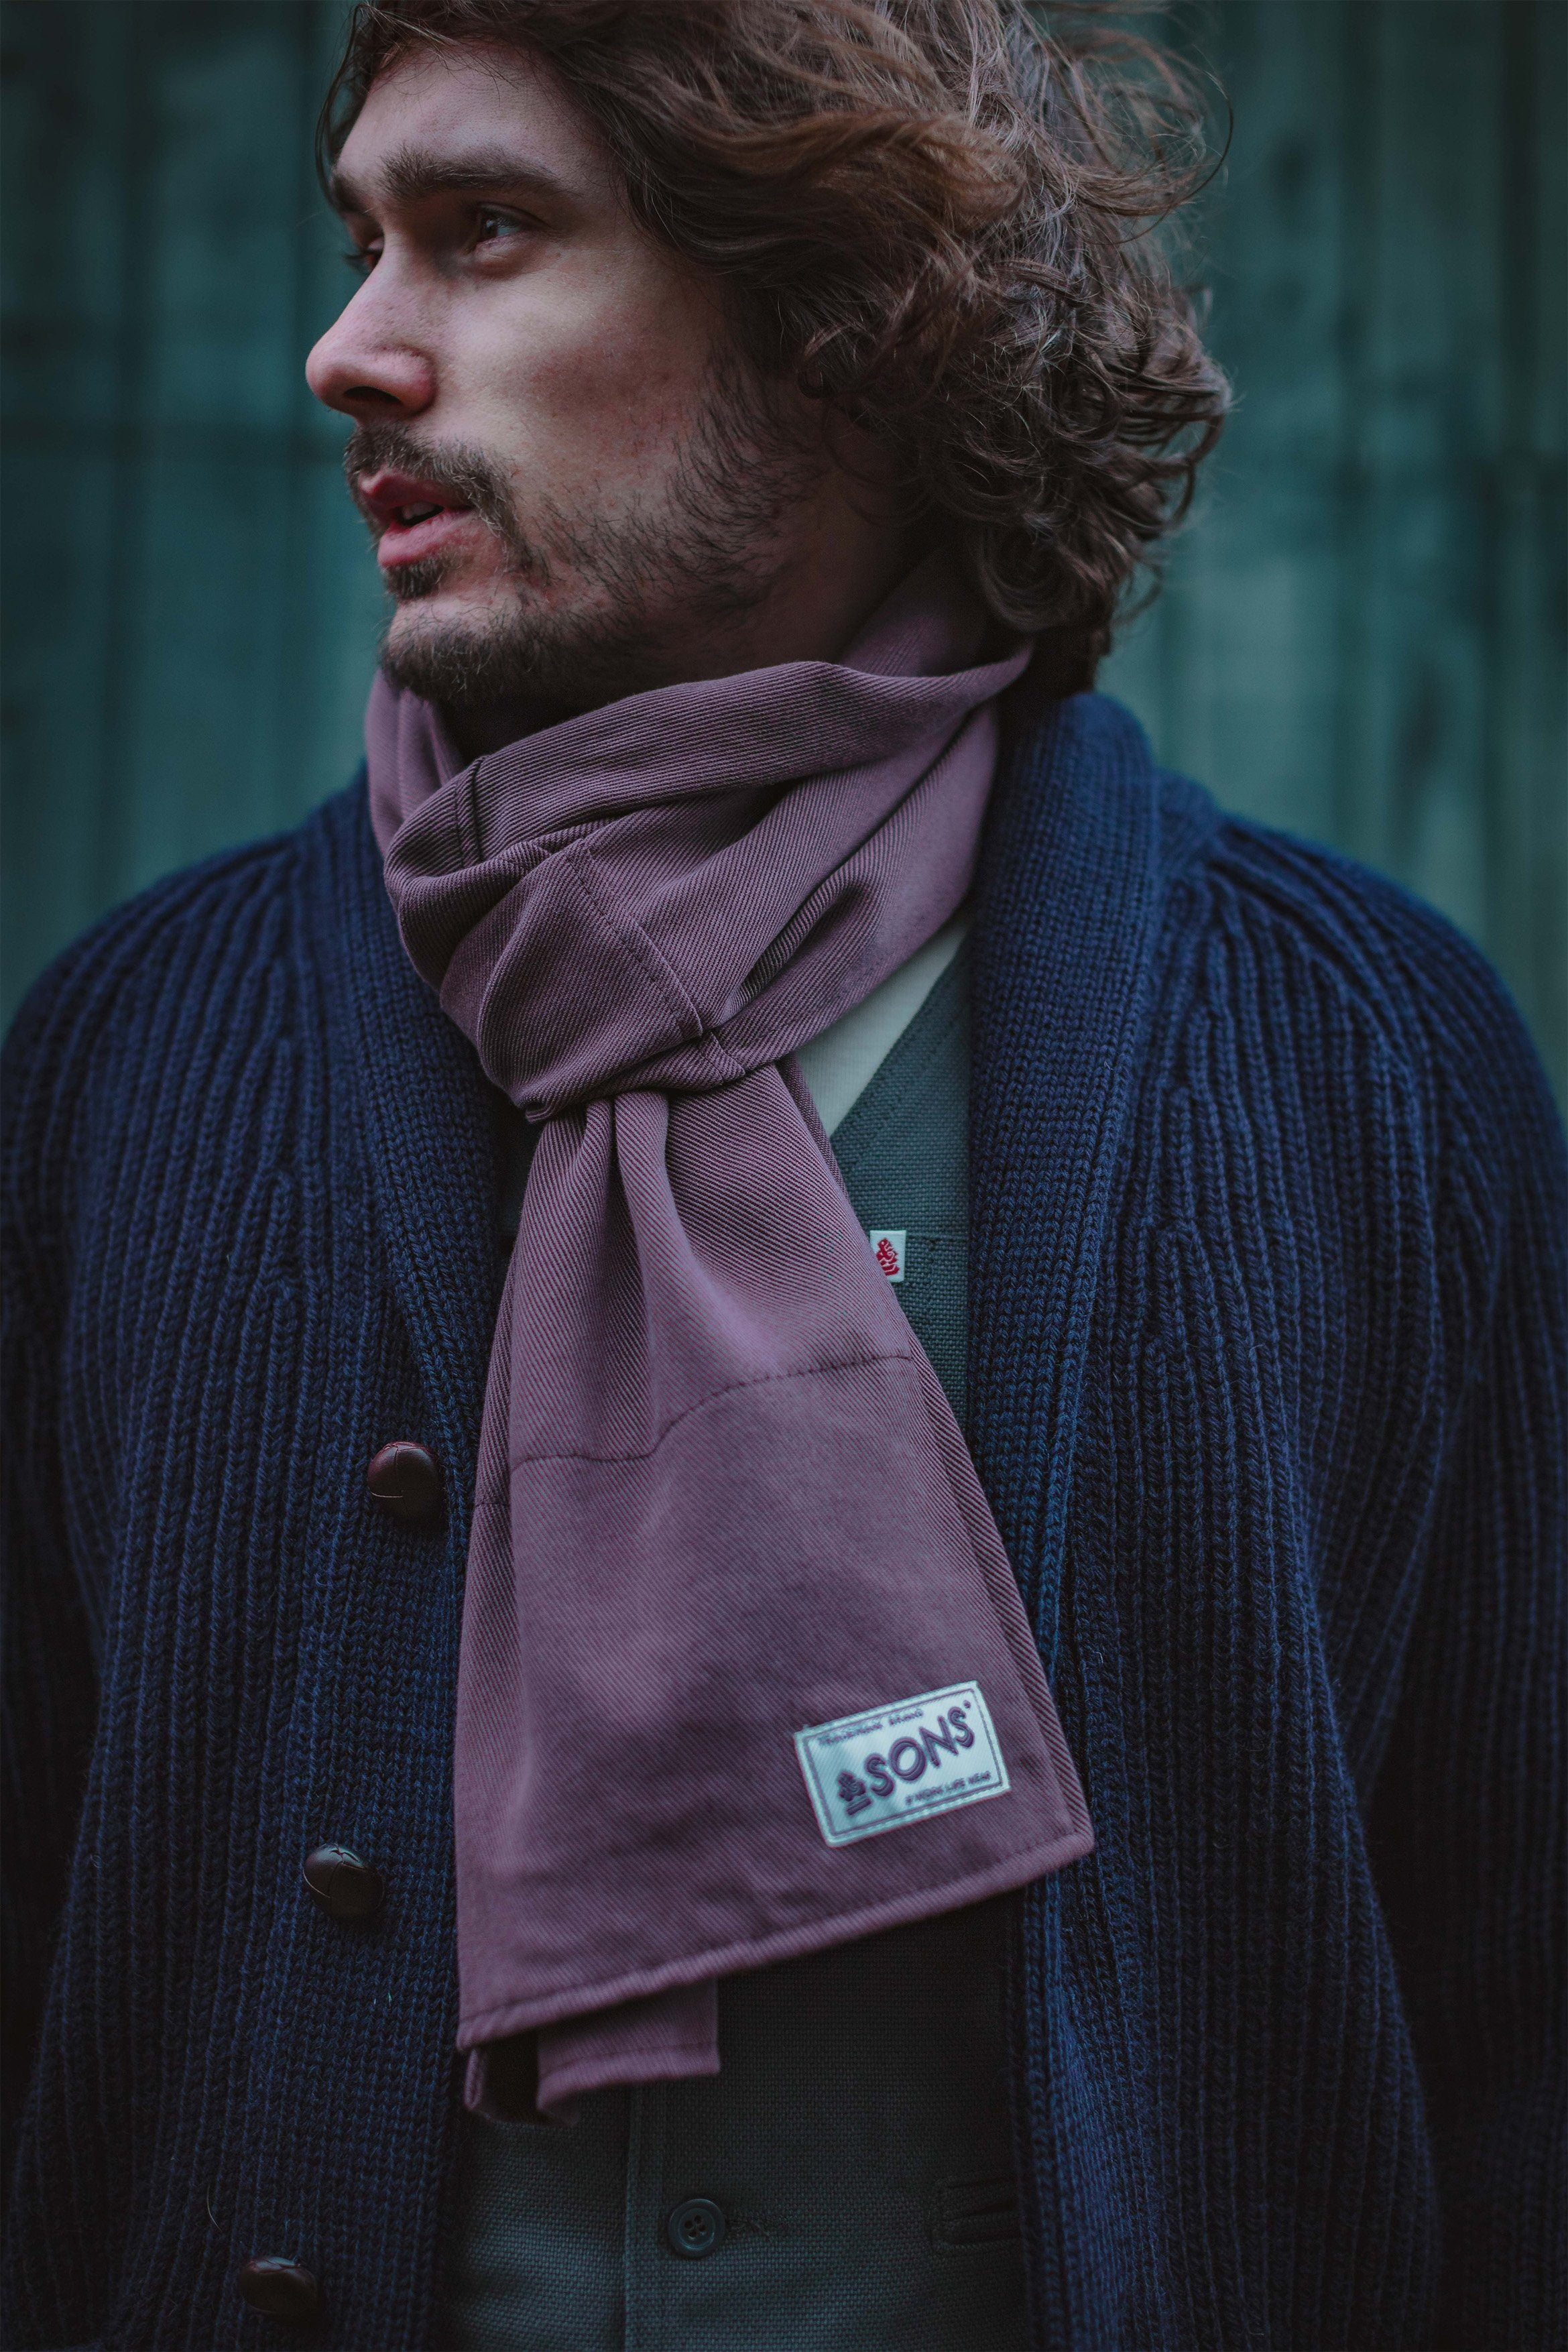 &SONS Hemingway Scarf Mulberry Dust